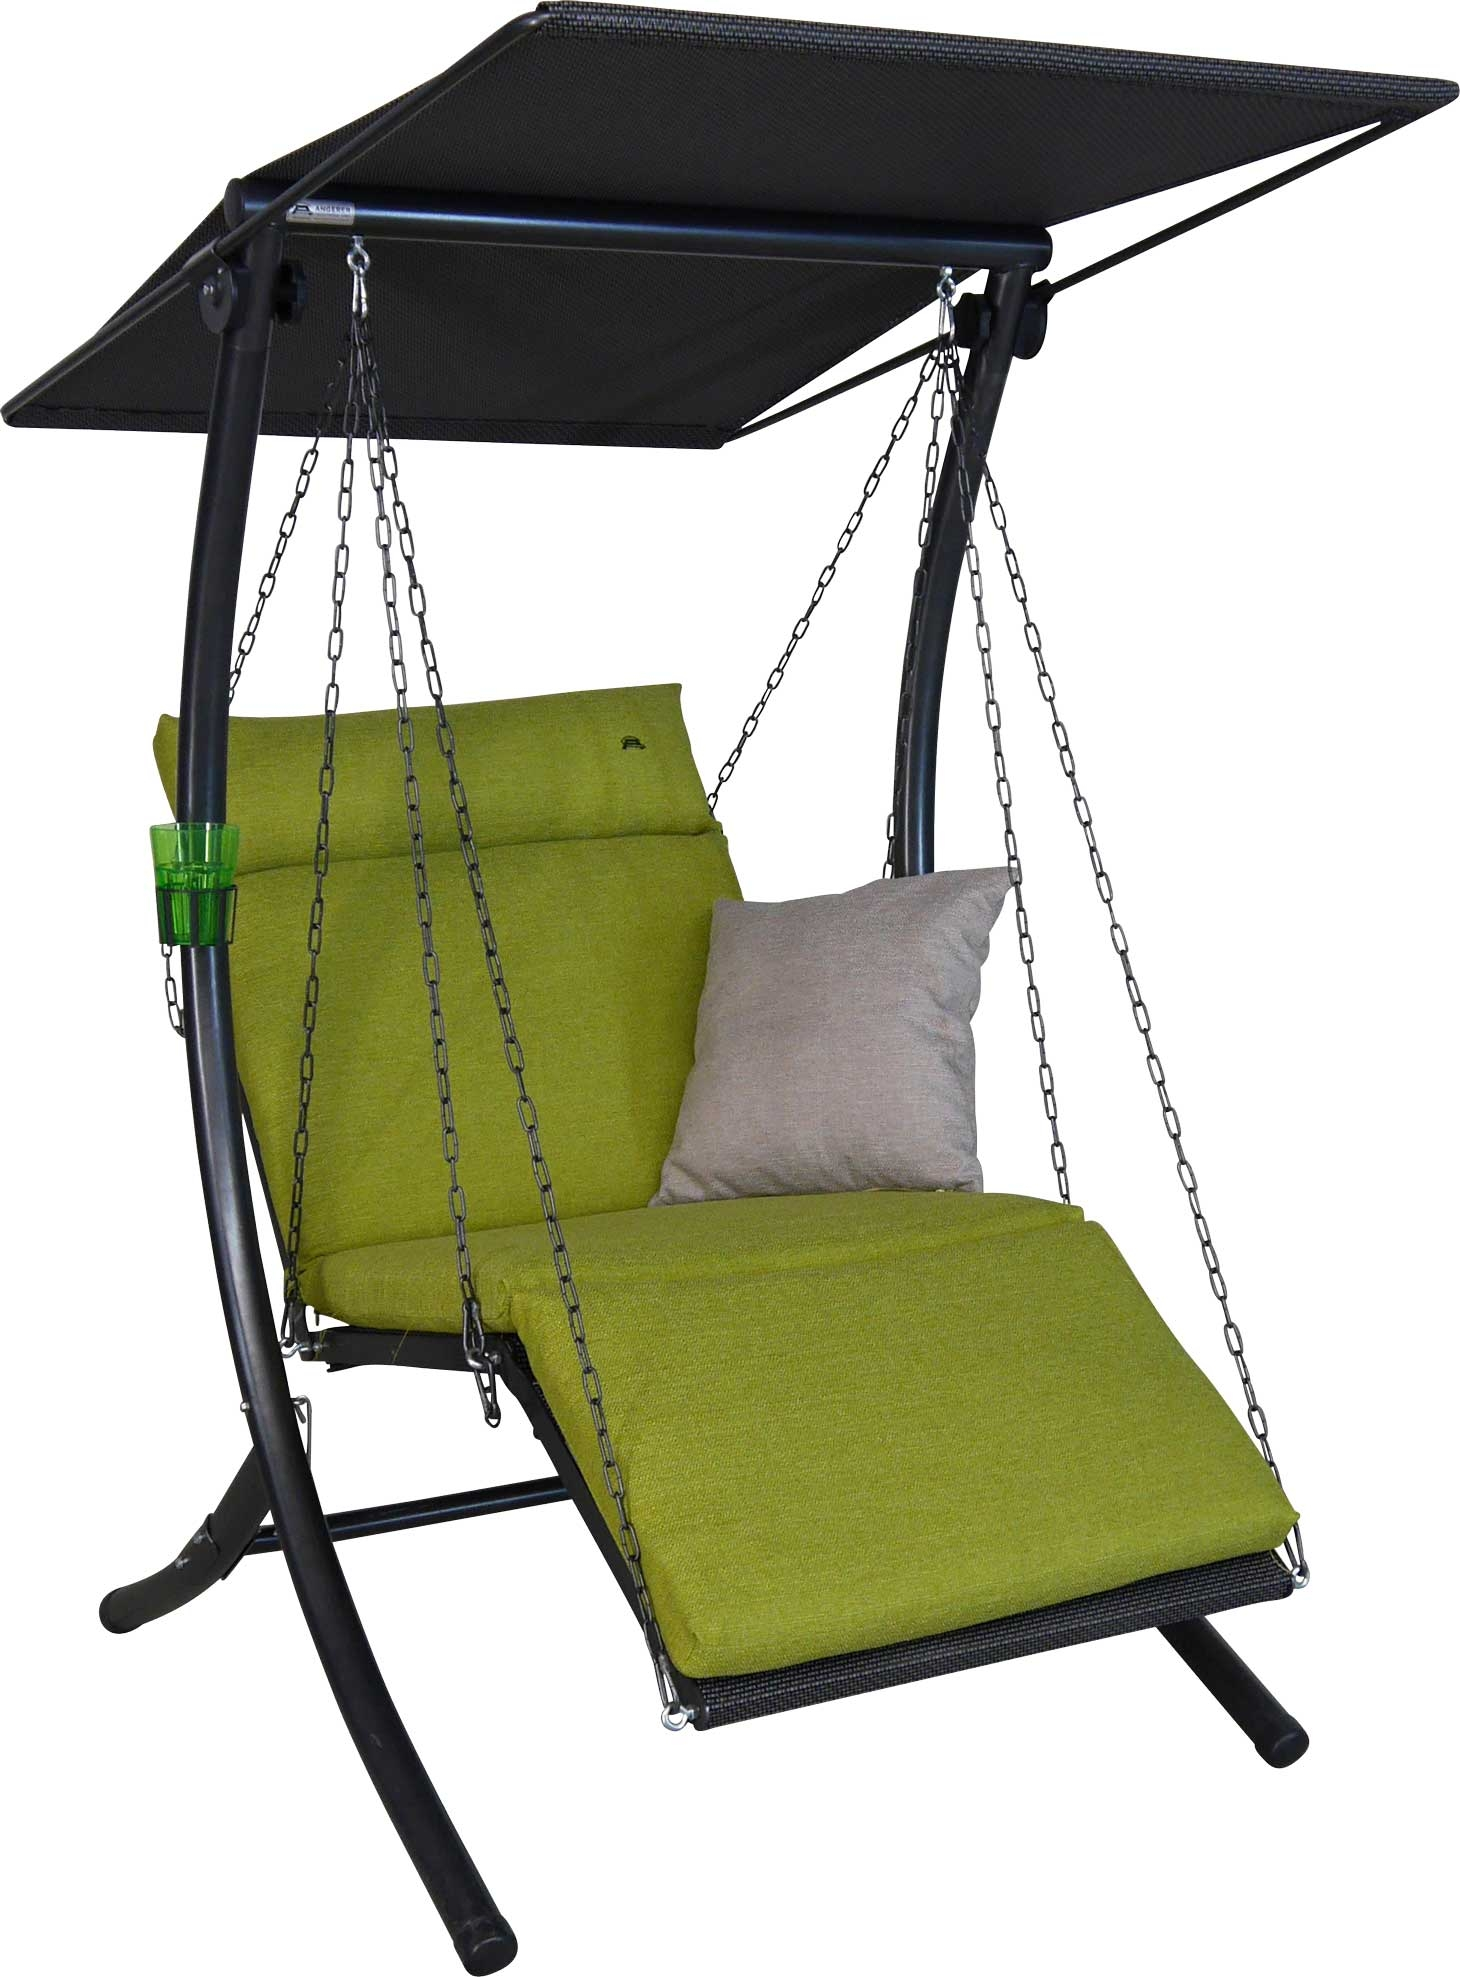 Angerer Hollywoodschaukel 1-Sitzer Swing Smart lime